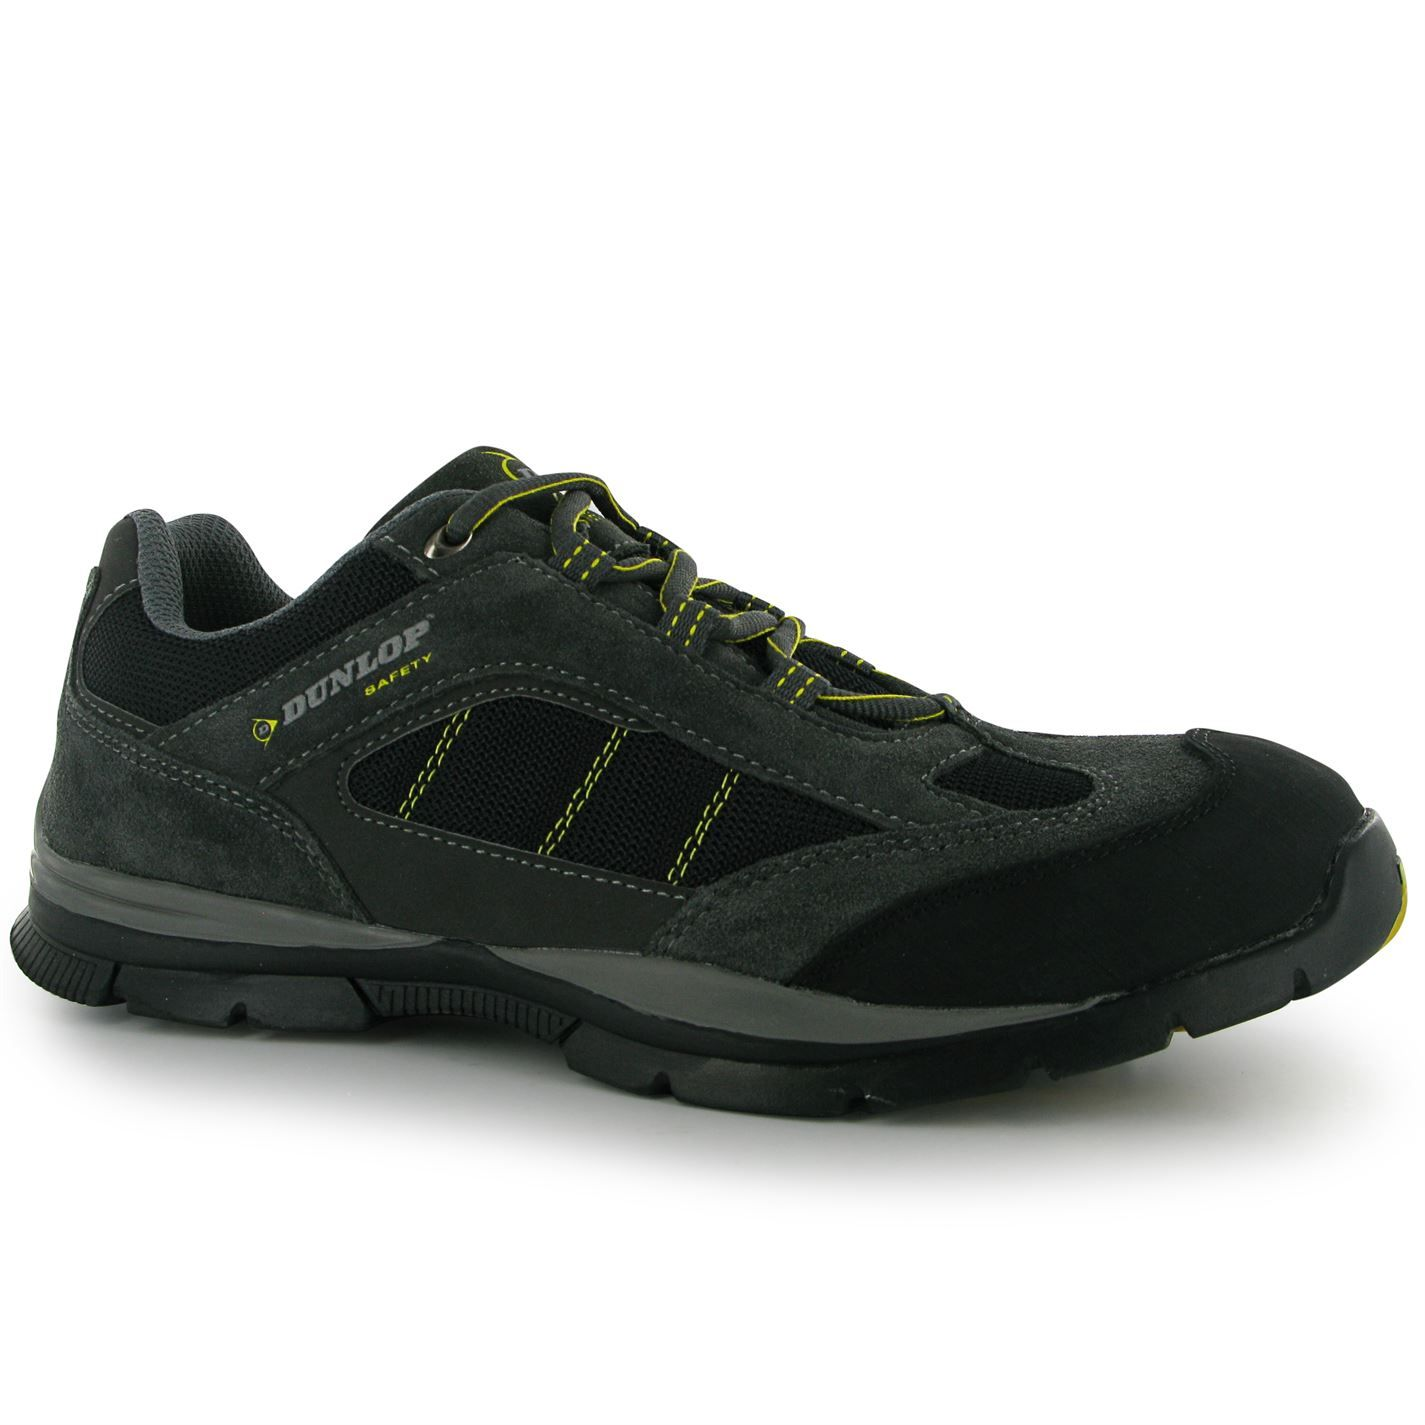 Dunlop Safety Iowa Mens Steel Toe Cap Safety Shoes Mens